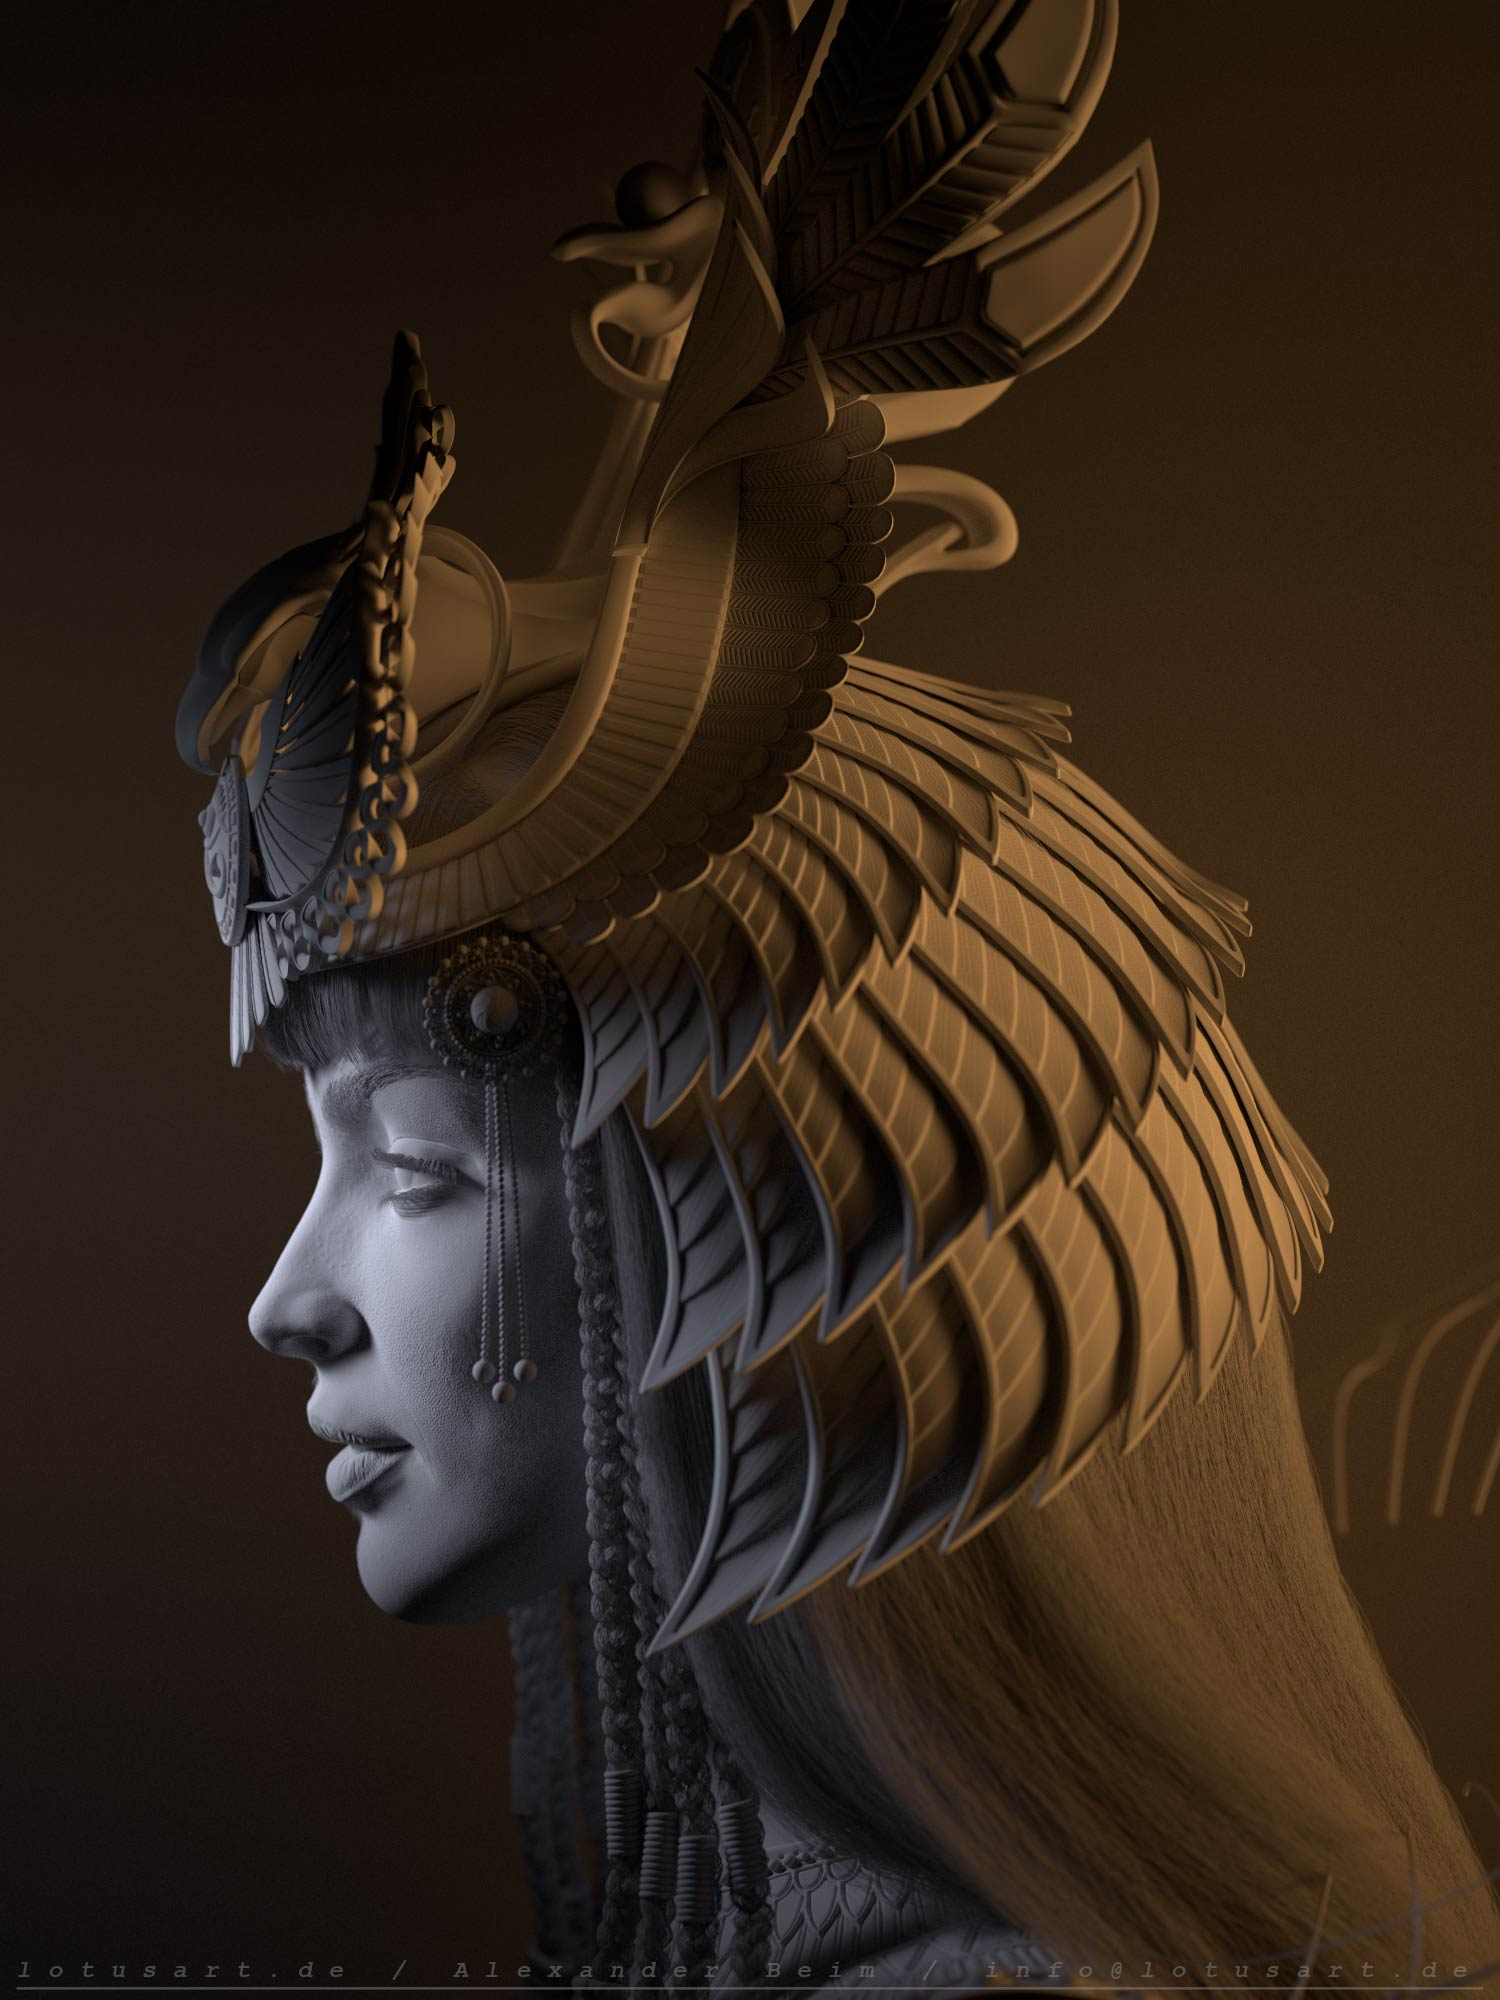 cleopatra_3d_lighting_side_view_digital_csulpting